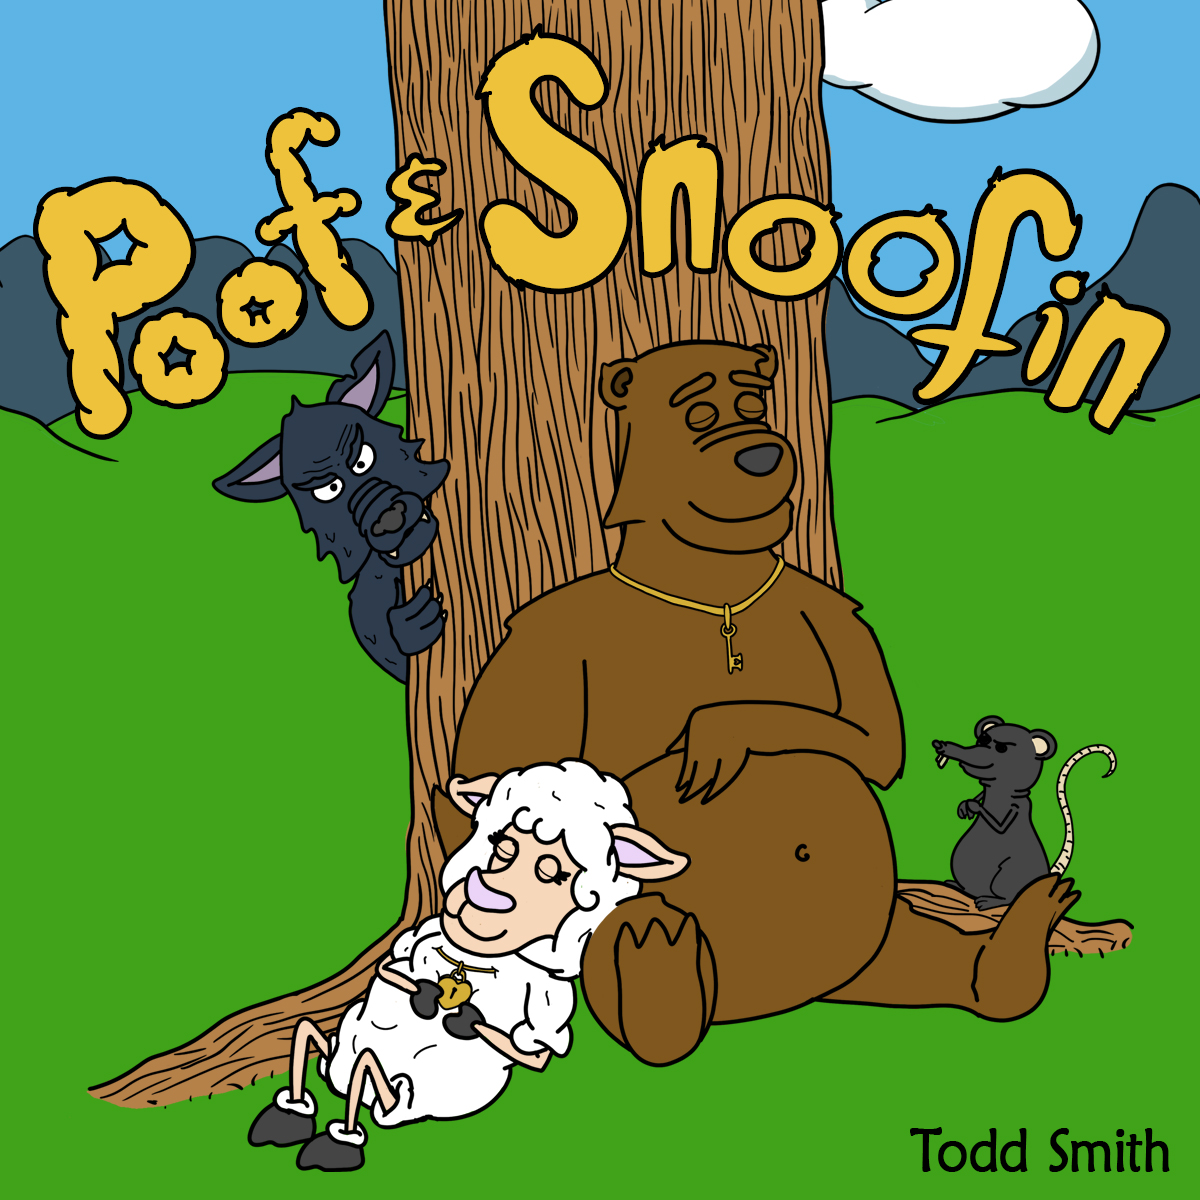 Poof and Snoofin is a tale devised by critically acclaimed musician  Todd Smith  to help teach children to be brave and stand up for what they believe in—especially when the ones you love are at stake!